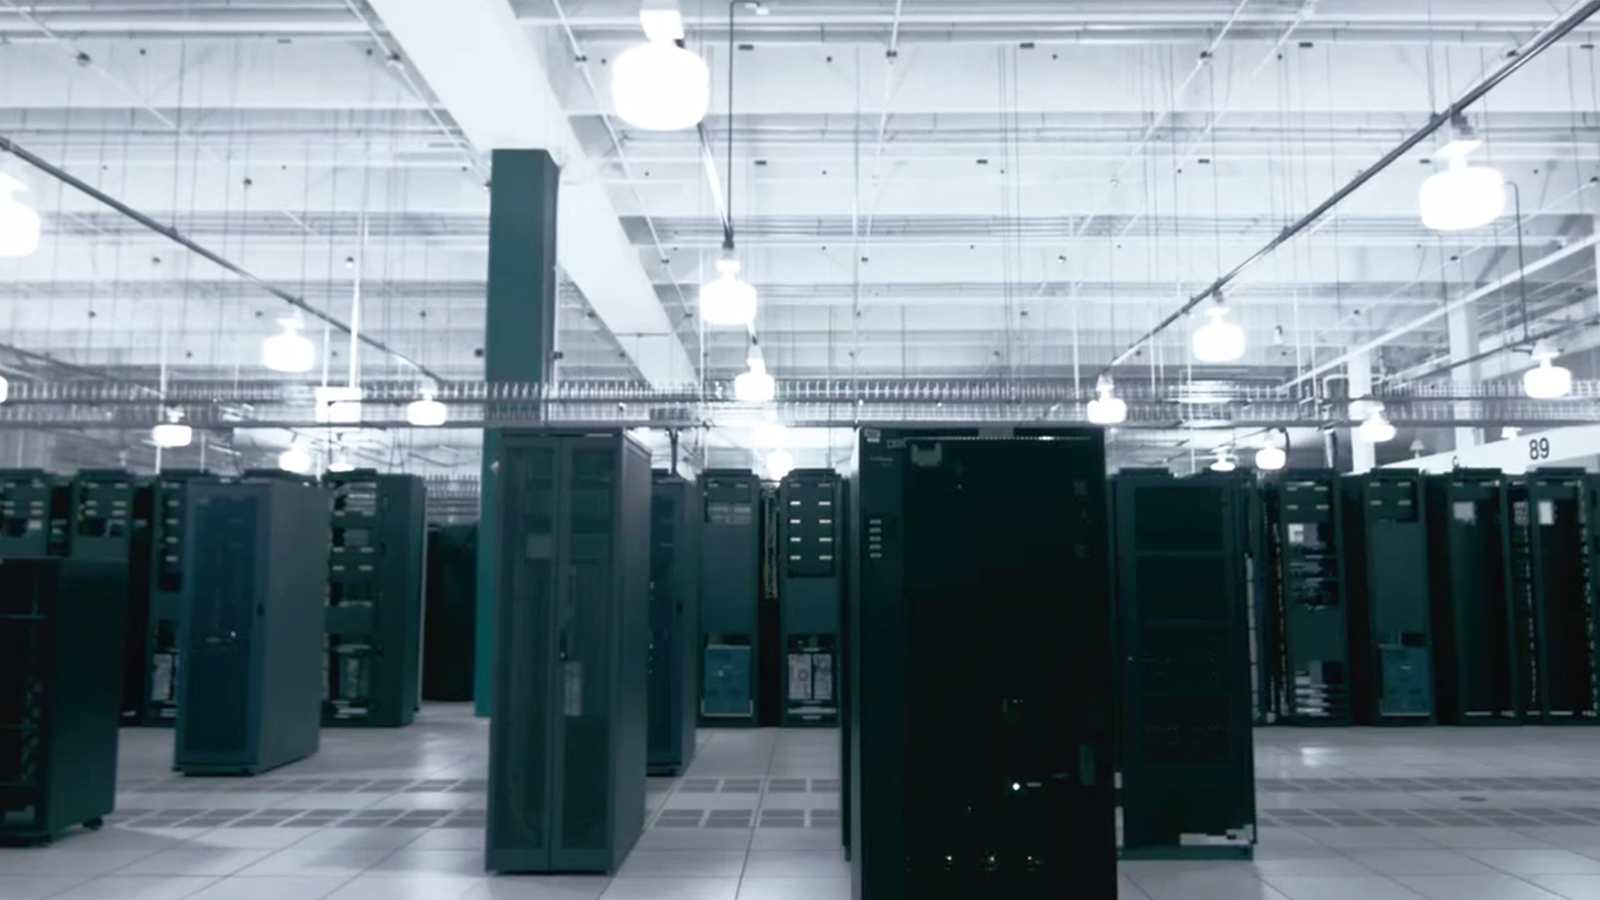 Video about VIsa data centers